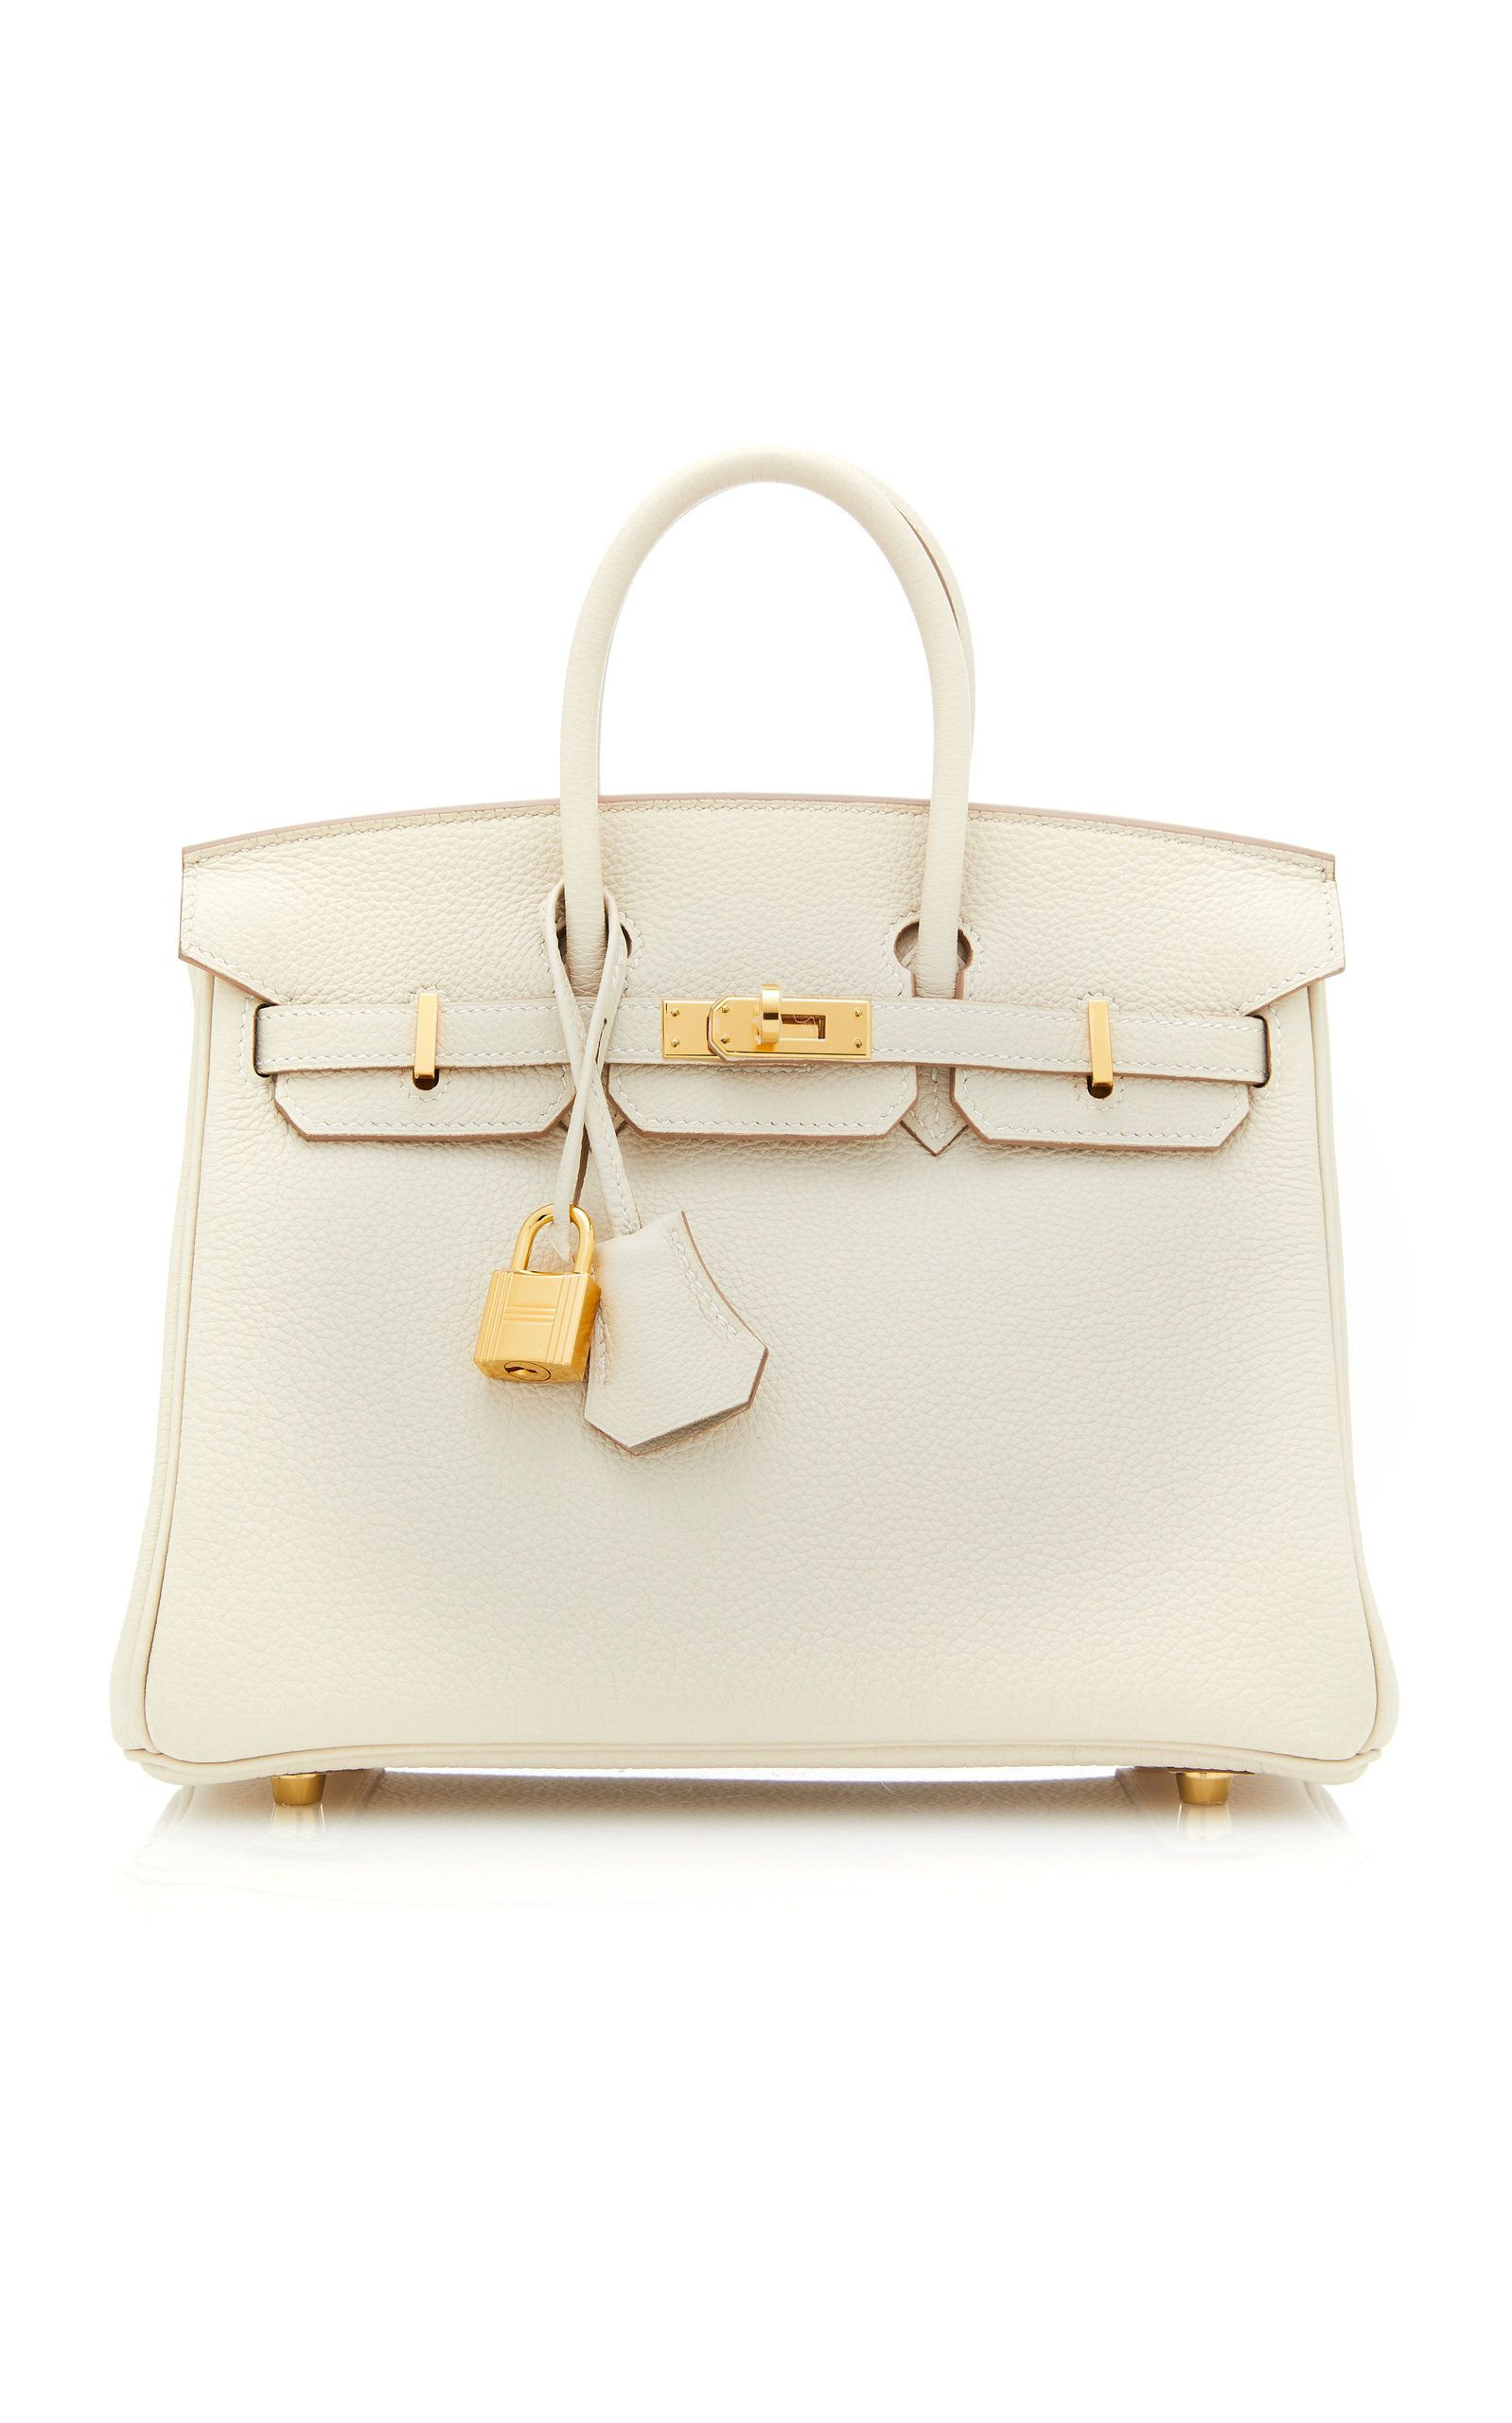 298544aaff25 Hermes 25cm Craie Togo Leather Birkin by HERMÈS VINTAGE BY HERITAGE  AUCTIONS for Preorder on Moda Operandi